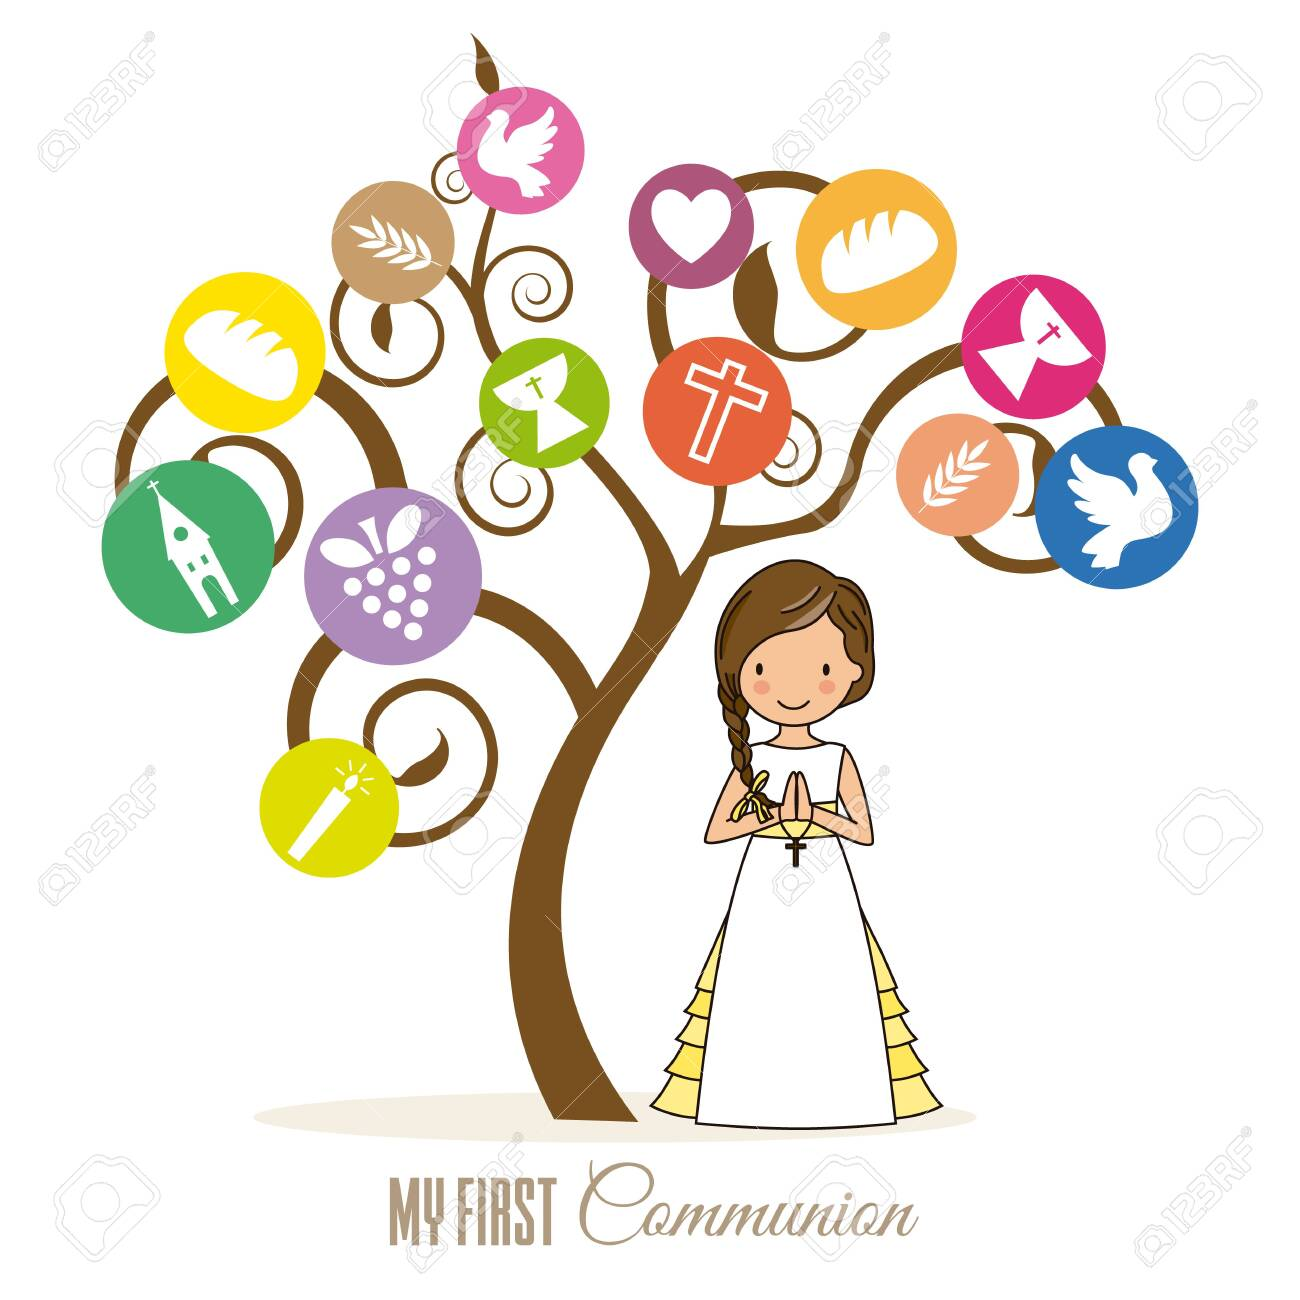 first communion card. Tree with religious icons and girl praying - 125016327